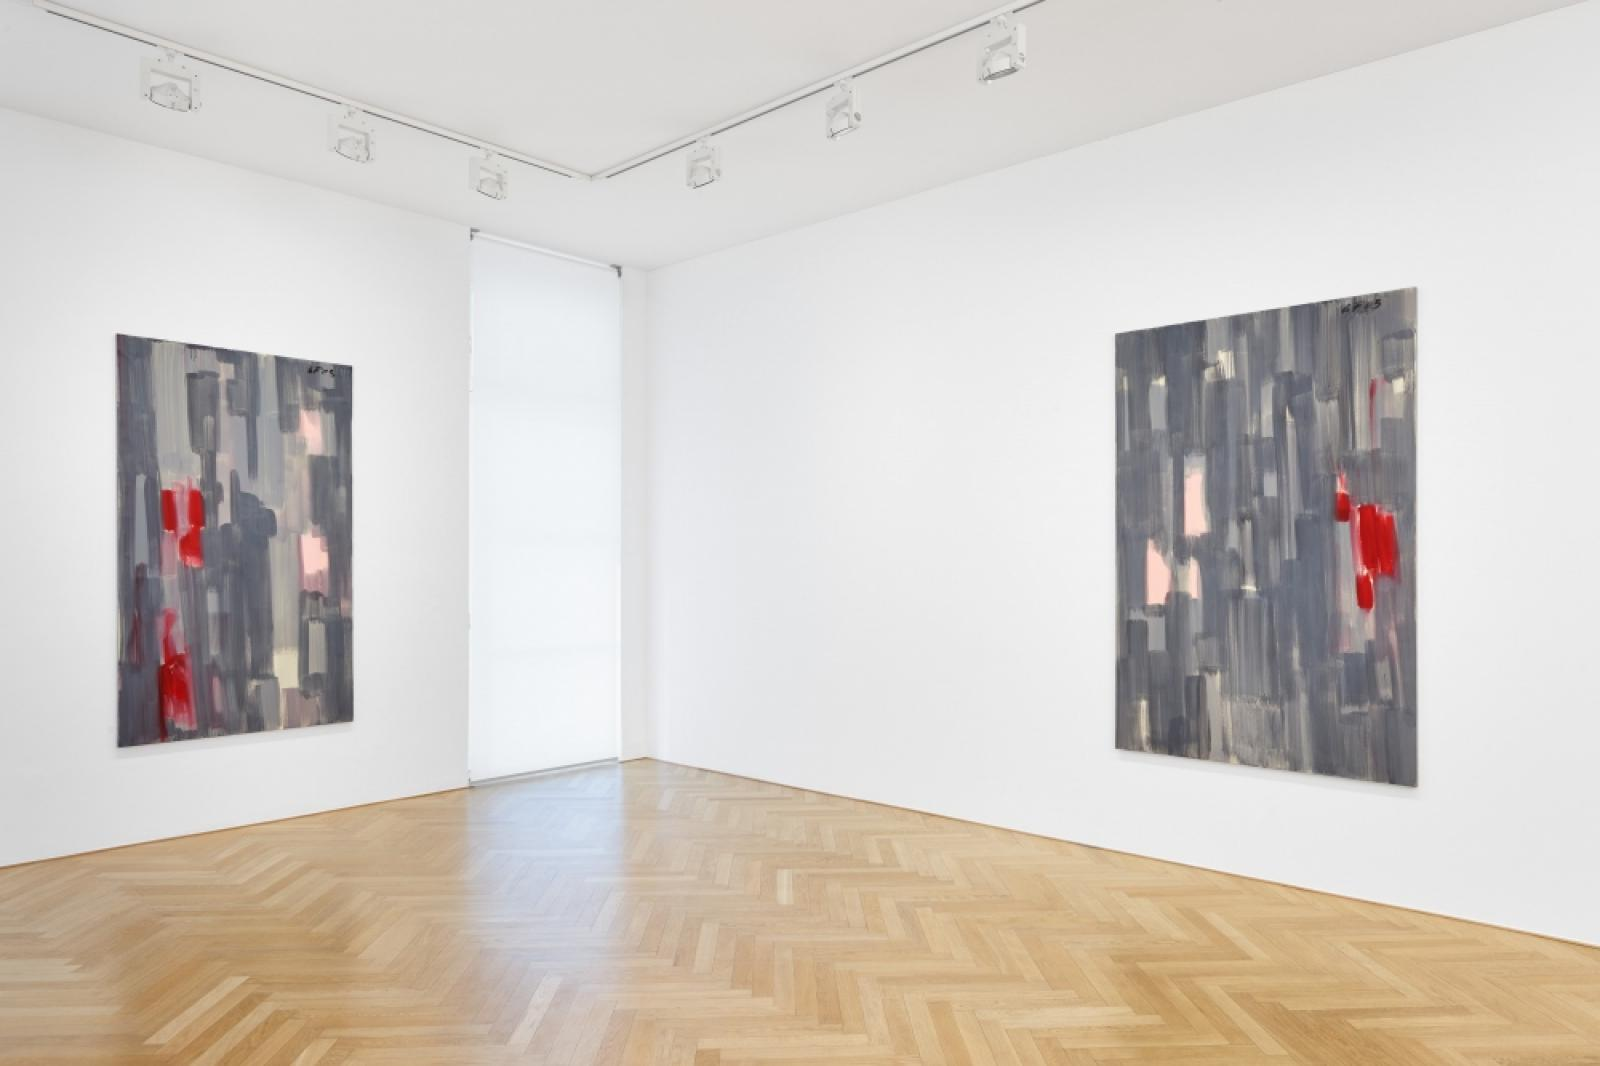 Günther Förg installation view at Galerie Max Hetzler